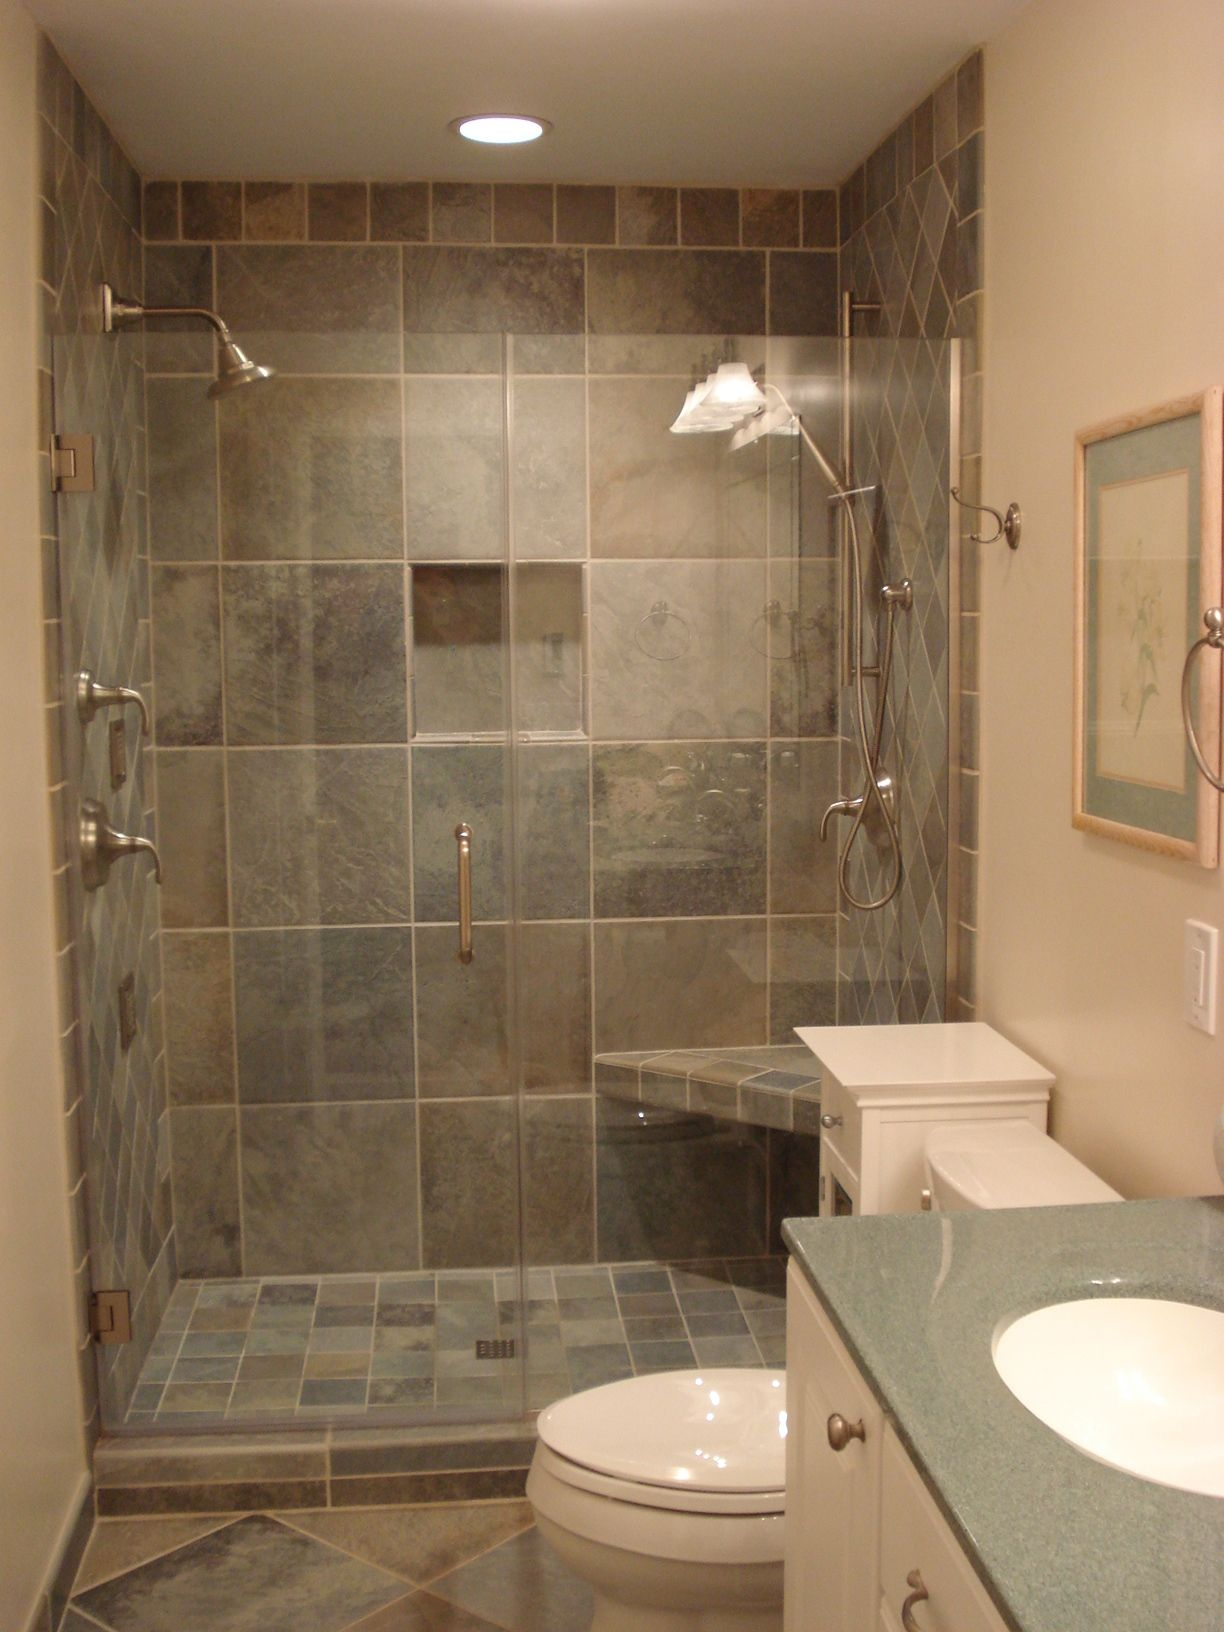 Best Bathroom Remodel Ideas You Must Have A Look Pinterest - How to completely remodel a bathroom